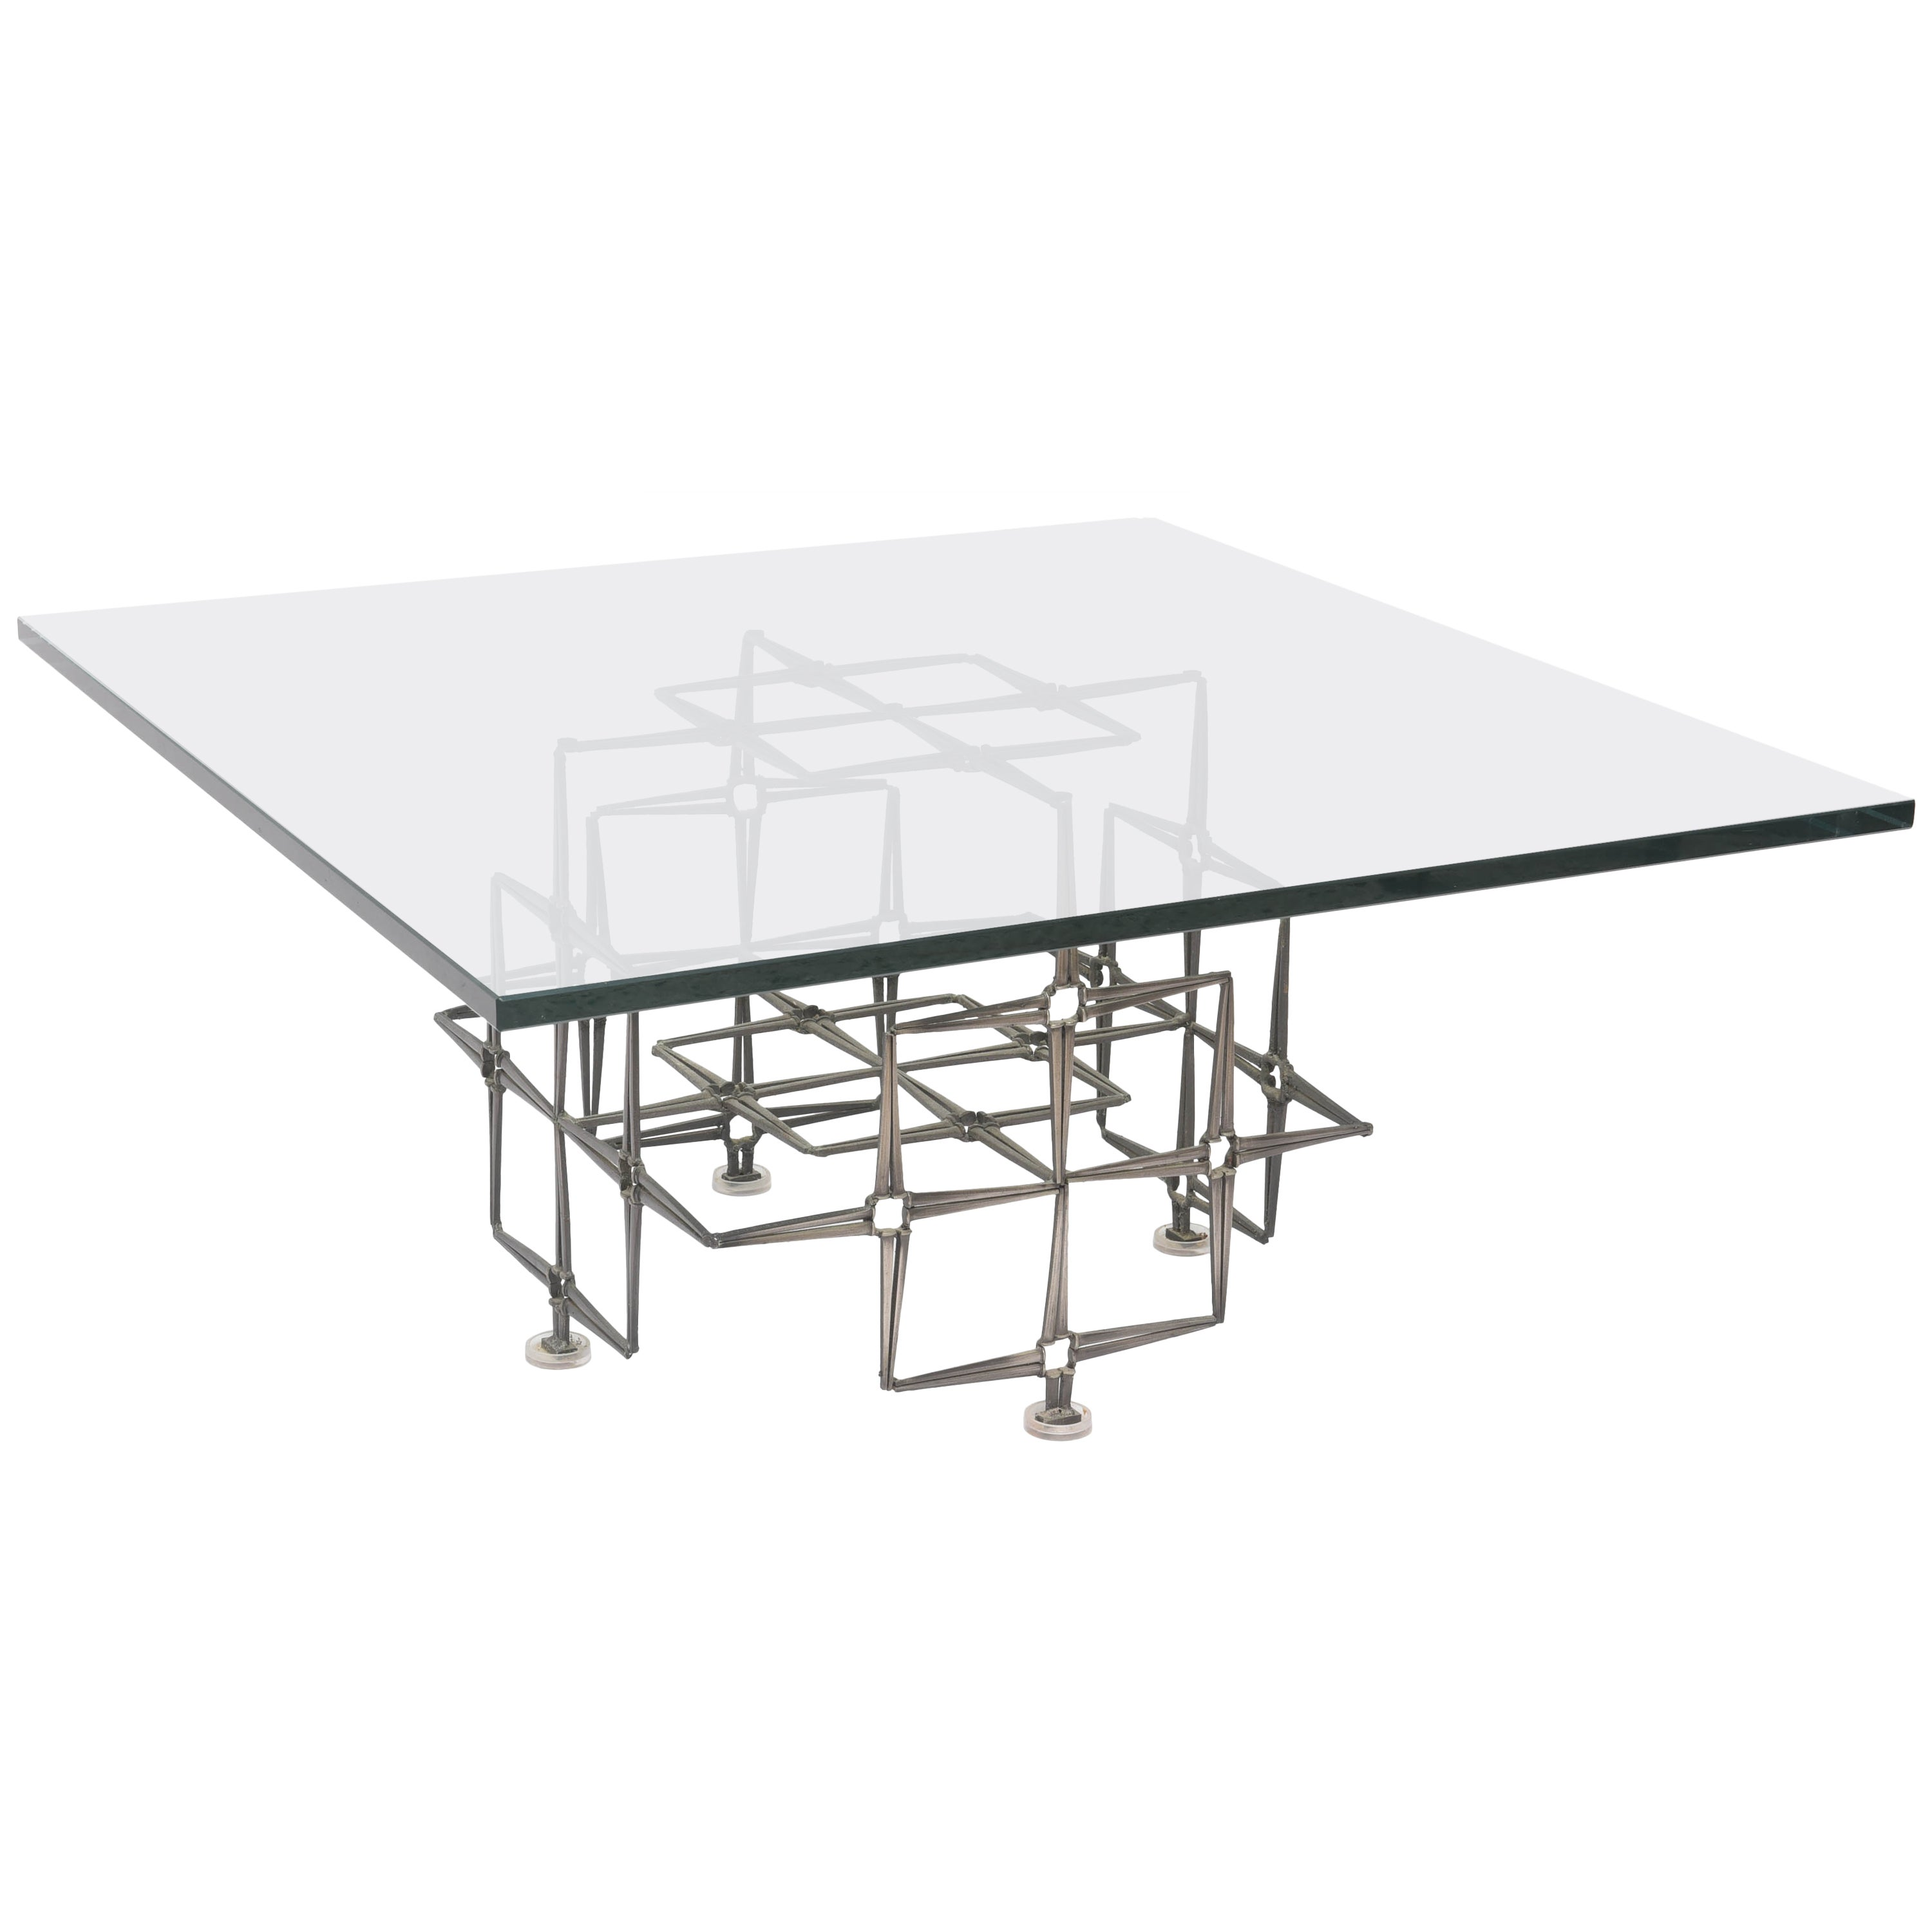 Large Square Brutalist Paul Evans Style Cocktail Table, Nails and Glass